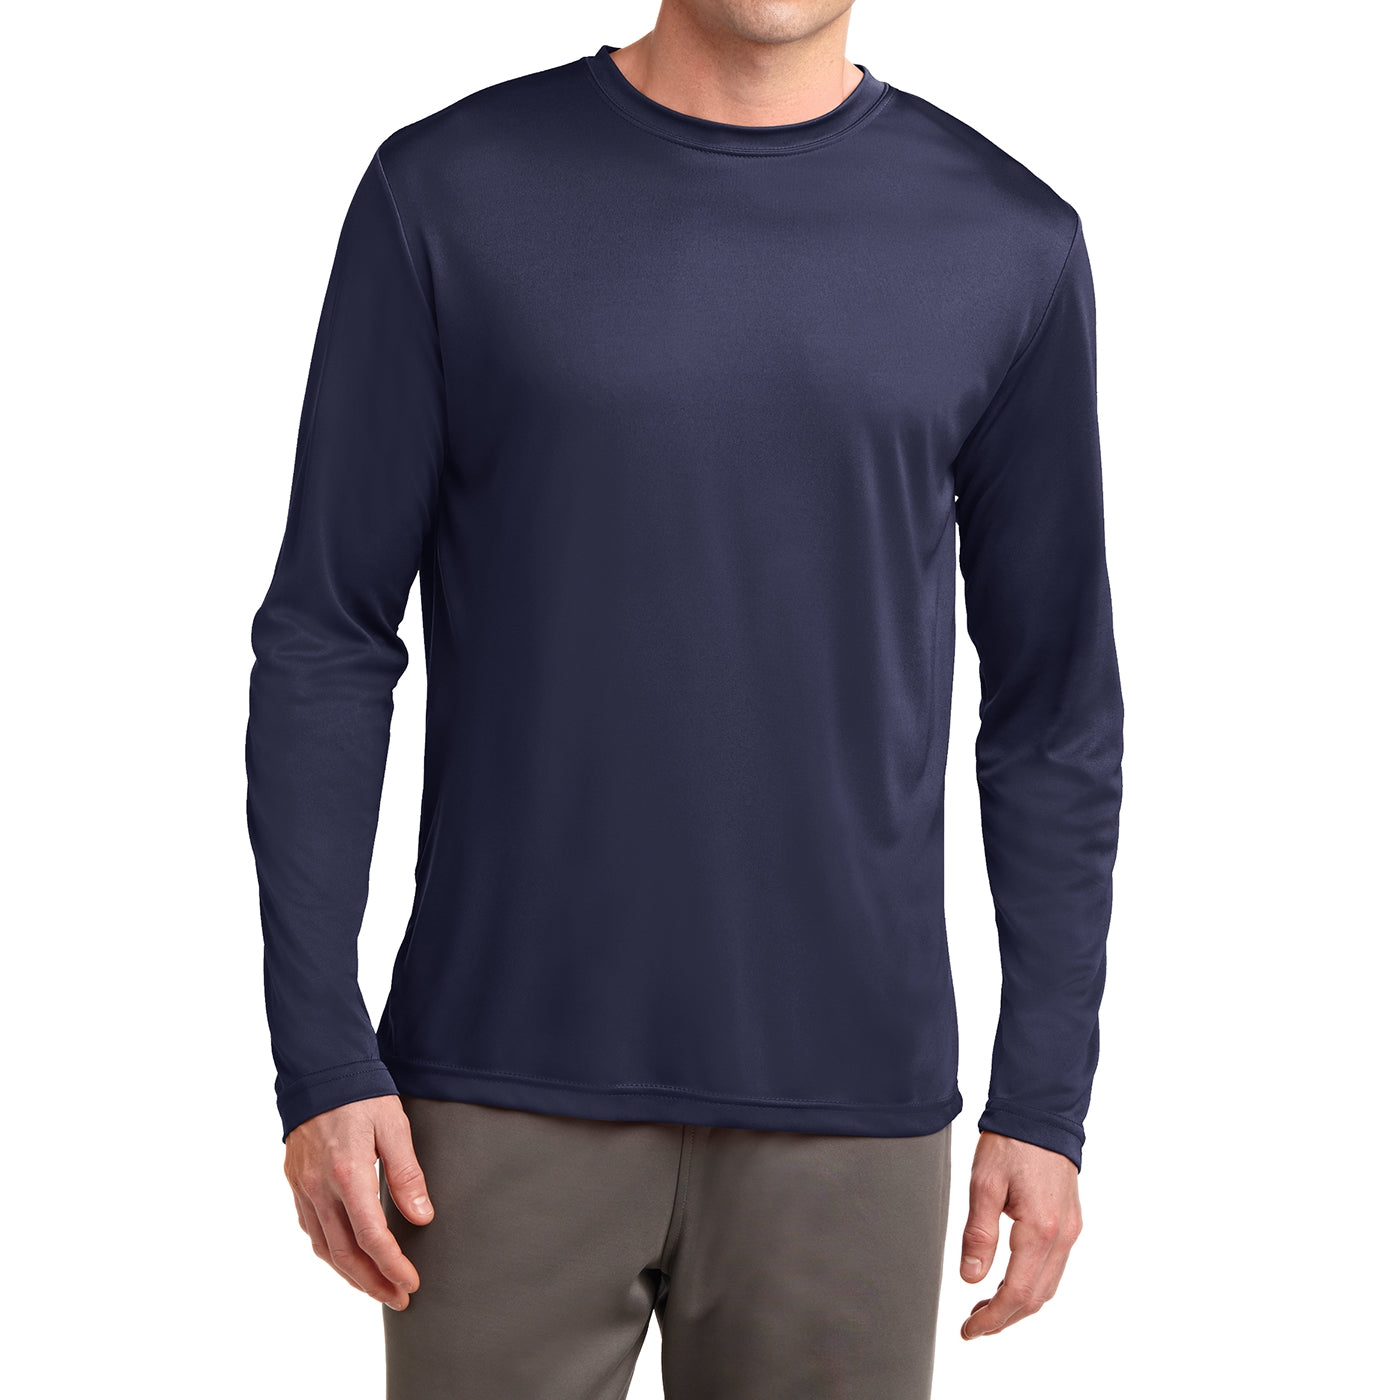 Men's Long Sleeve PosiCharge Competitor Tee - True Navy